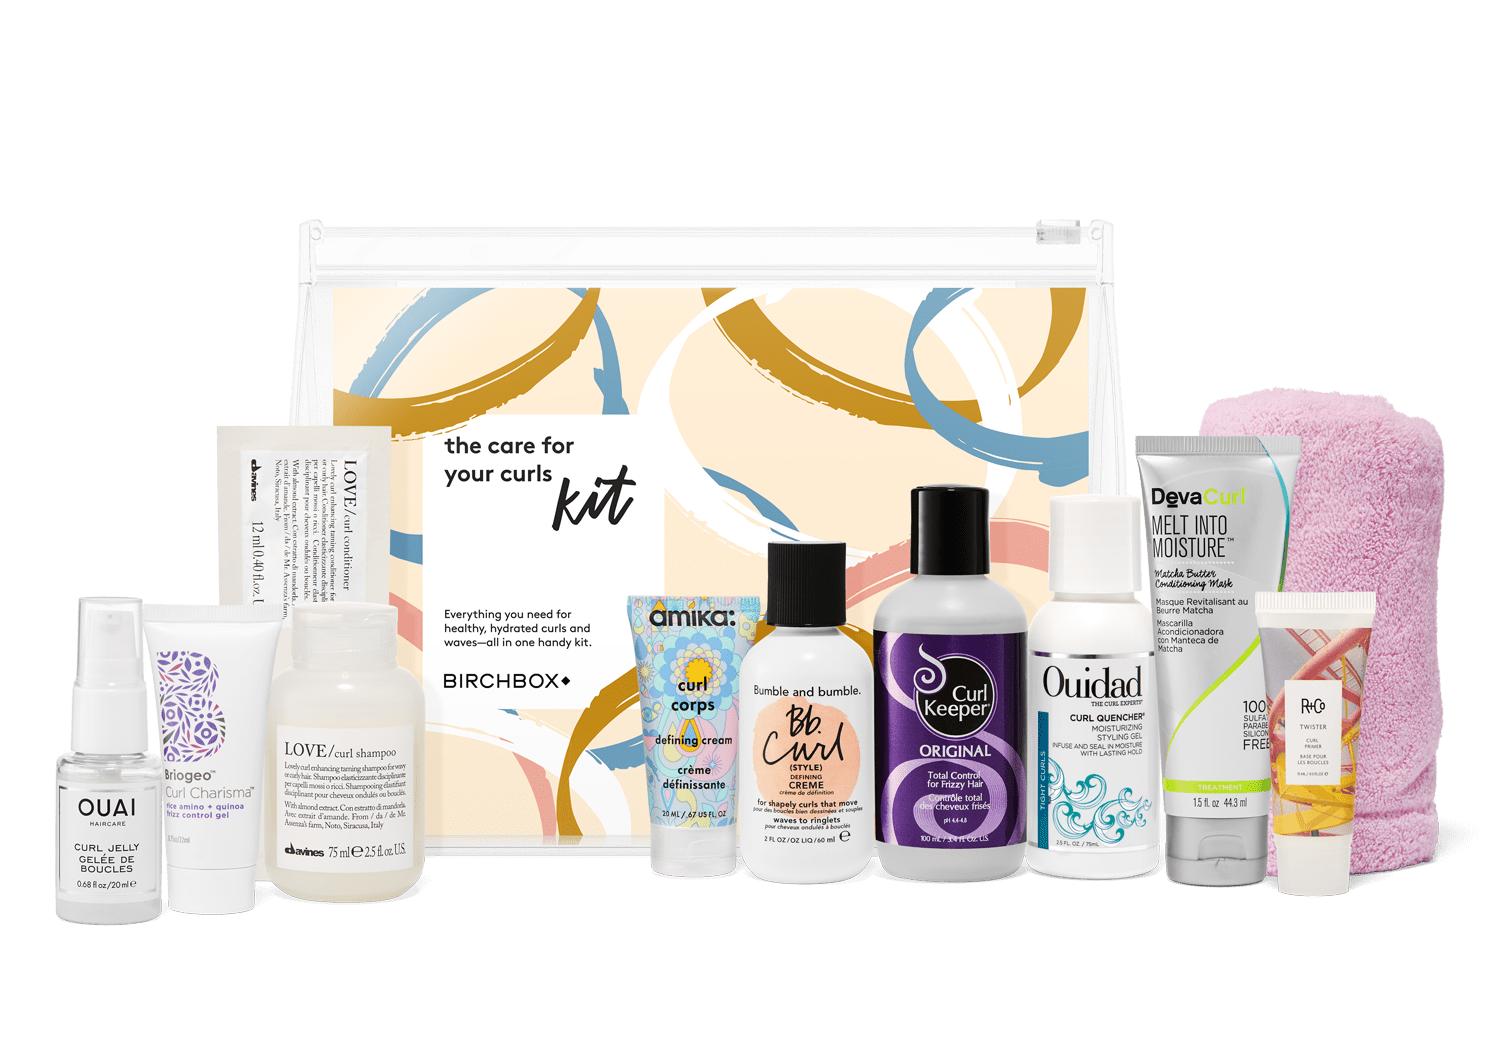 New Birchbox Kit + Free Gift Coupons – The Care for Your Curls Kit!